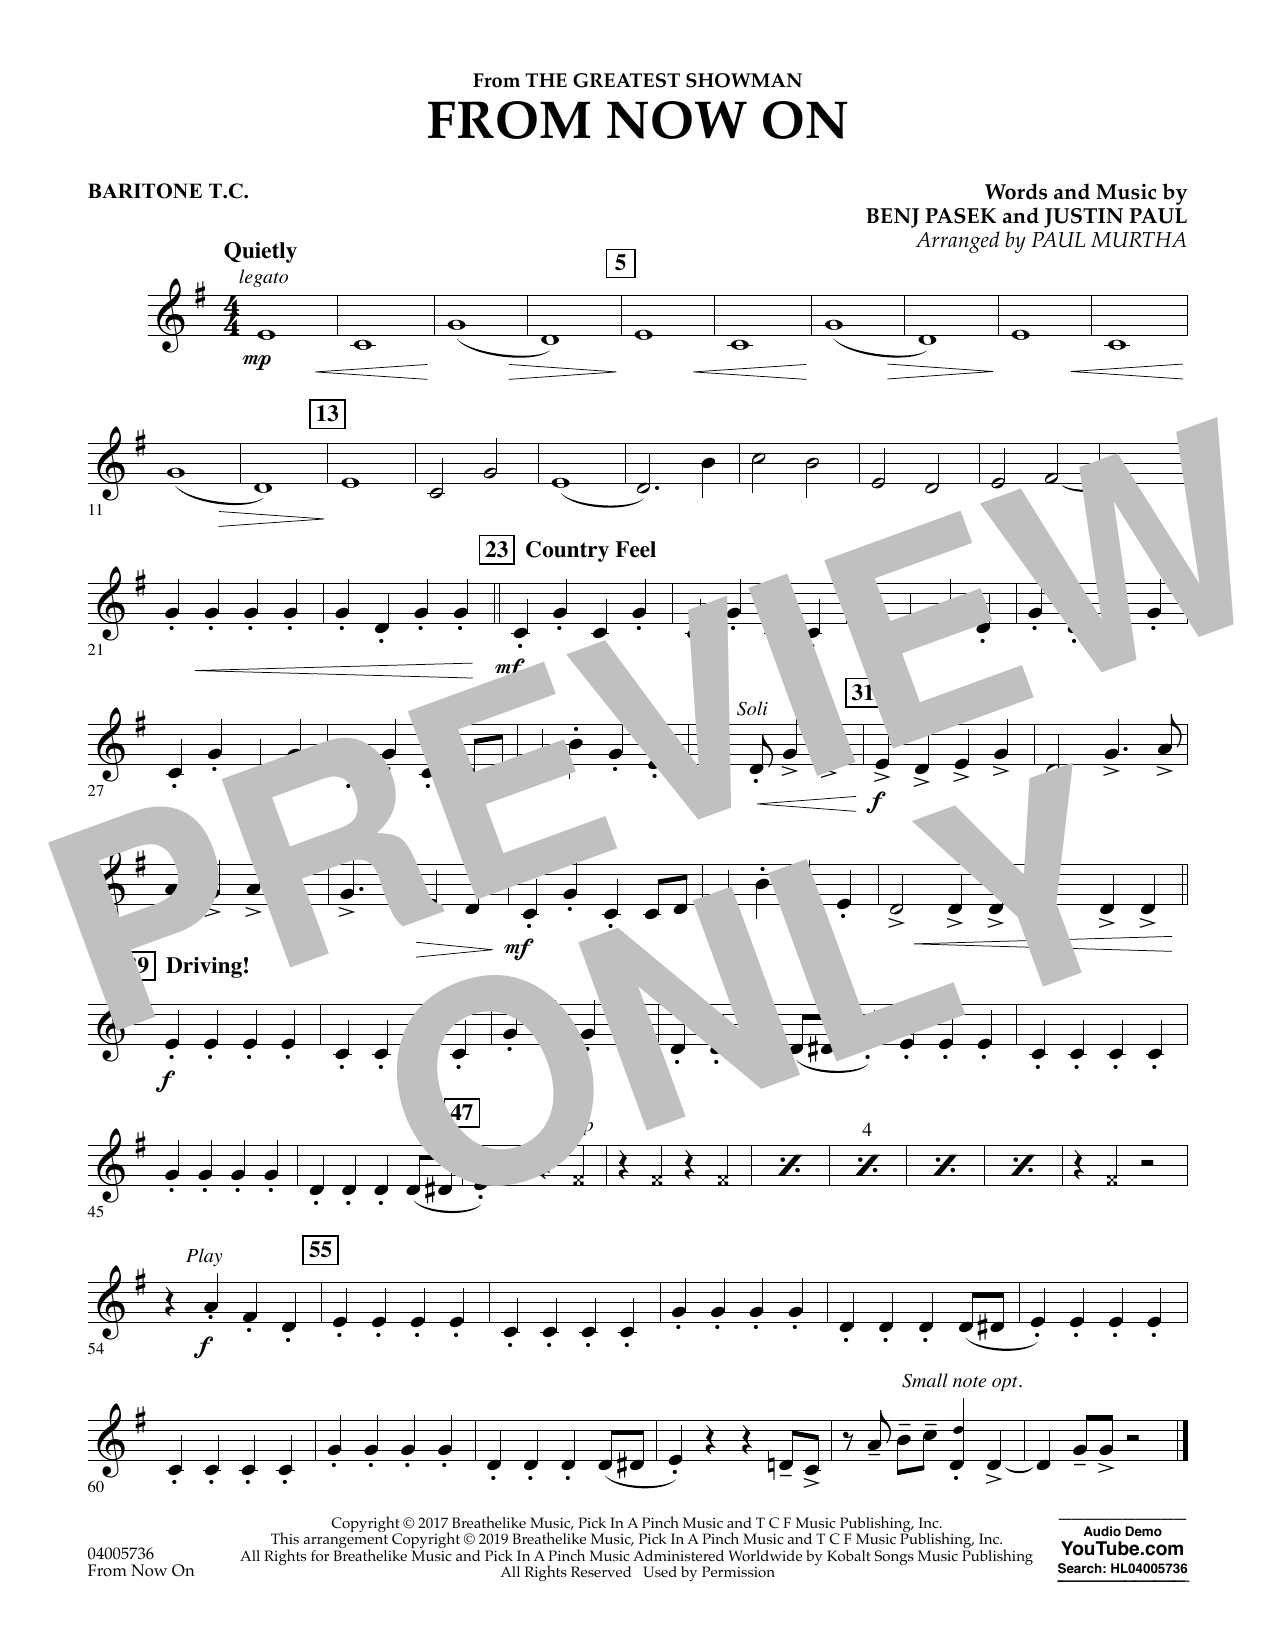 From Now On (from The Greatest Showman) (arr. Paul Murtha) - Baritone T.C. (Concert Band)